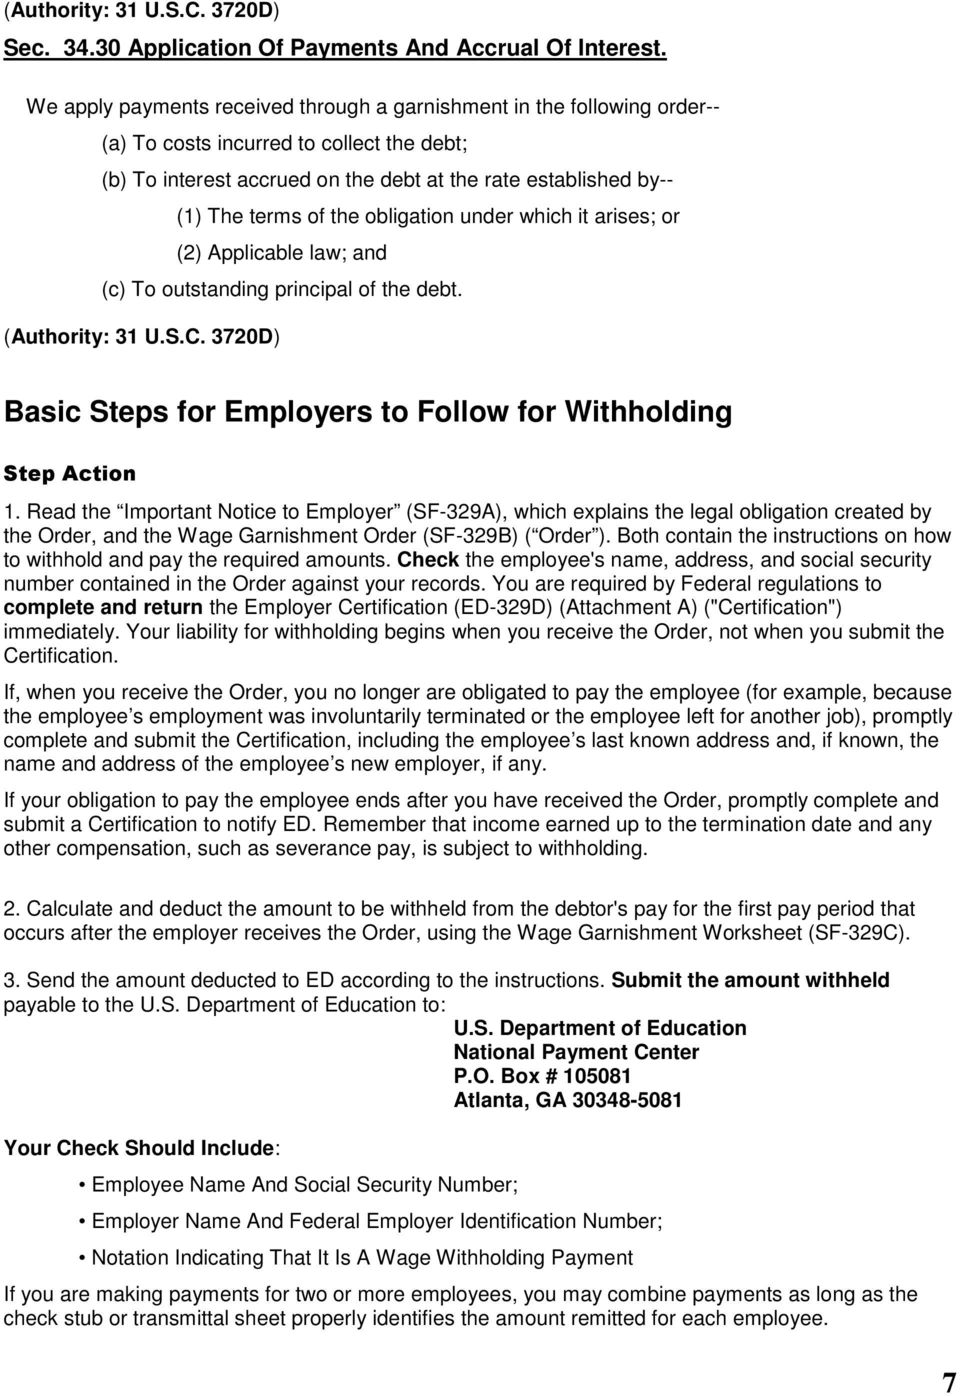 Worksheets Wage Garnishment Worksheet u s department of education employer garnishment handbook revised the obligation under which it arises or 2 applicable law and